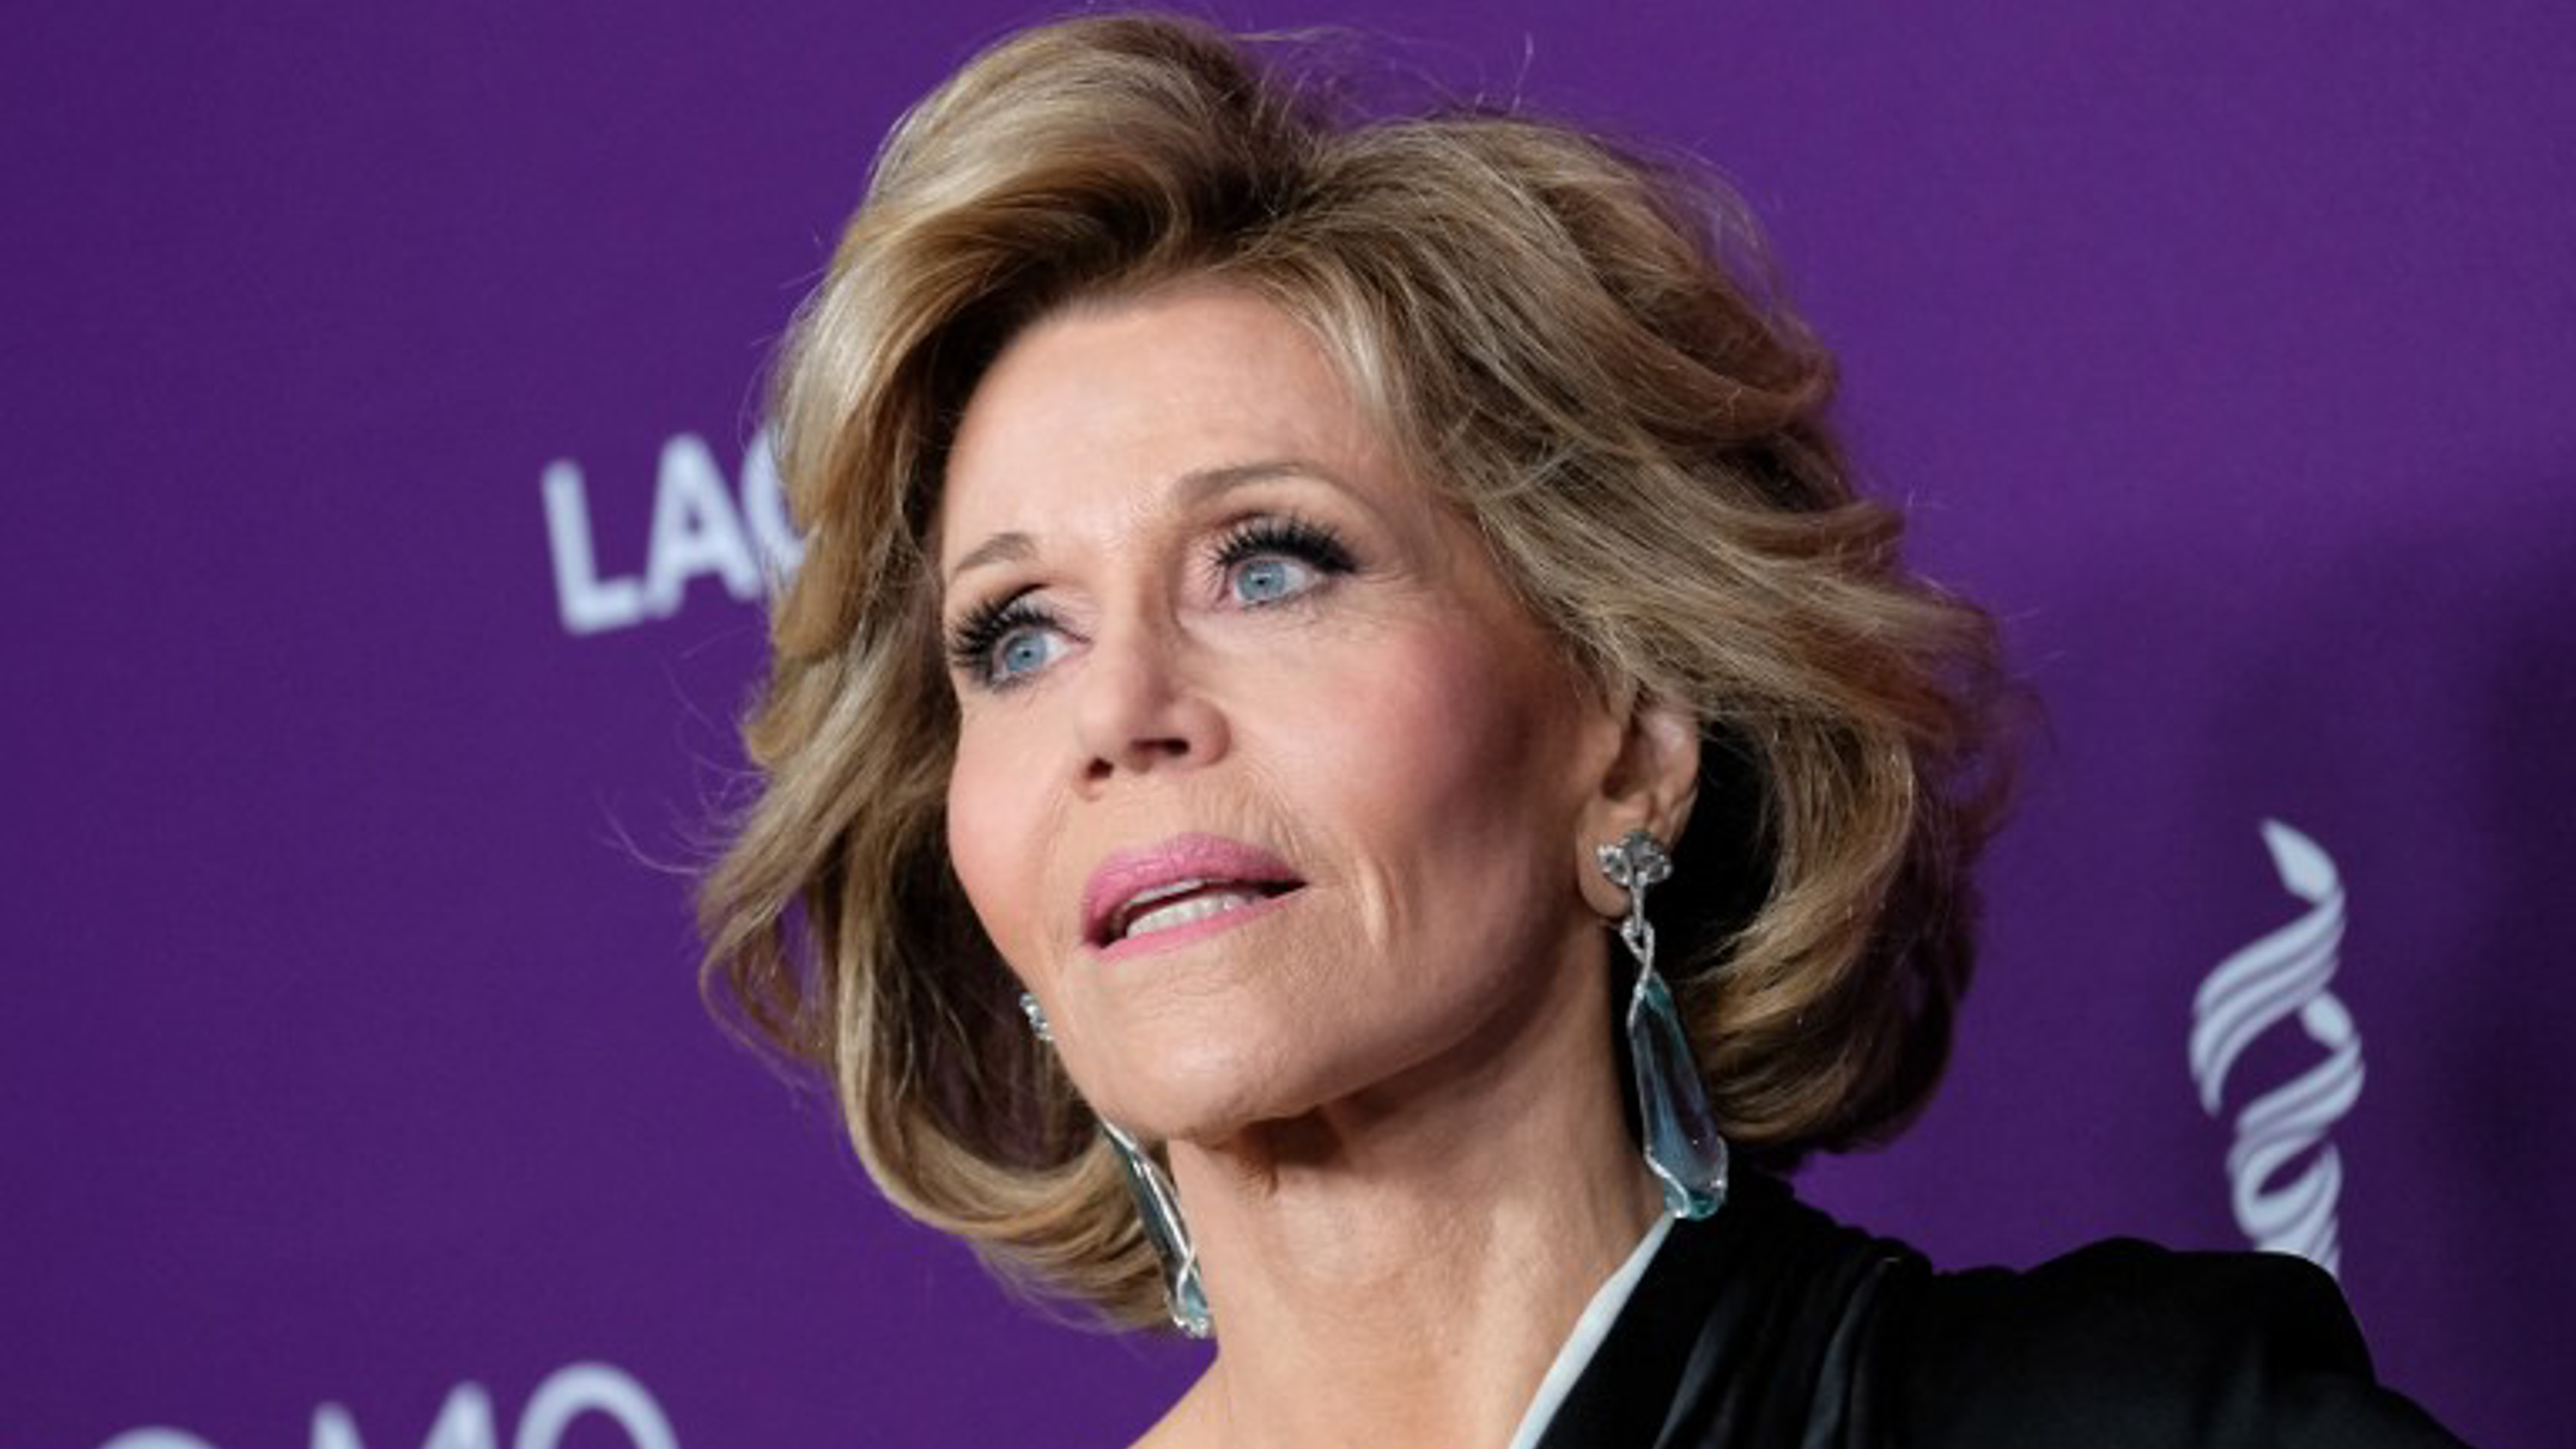 Jane fonda's cunning lingual slip of the tongue